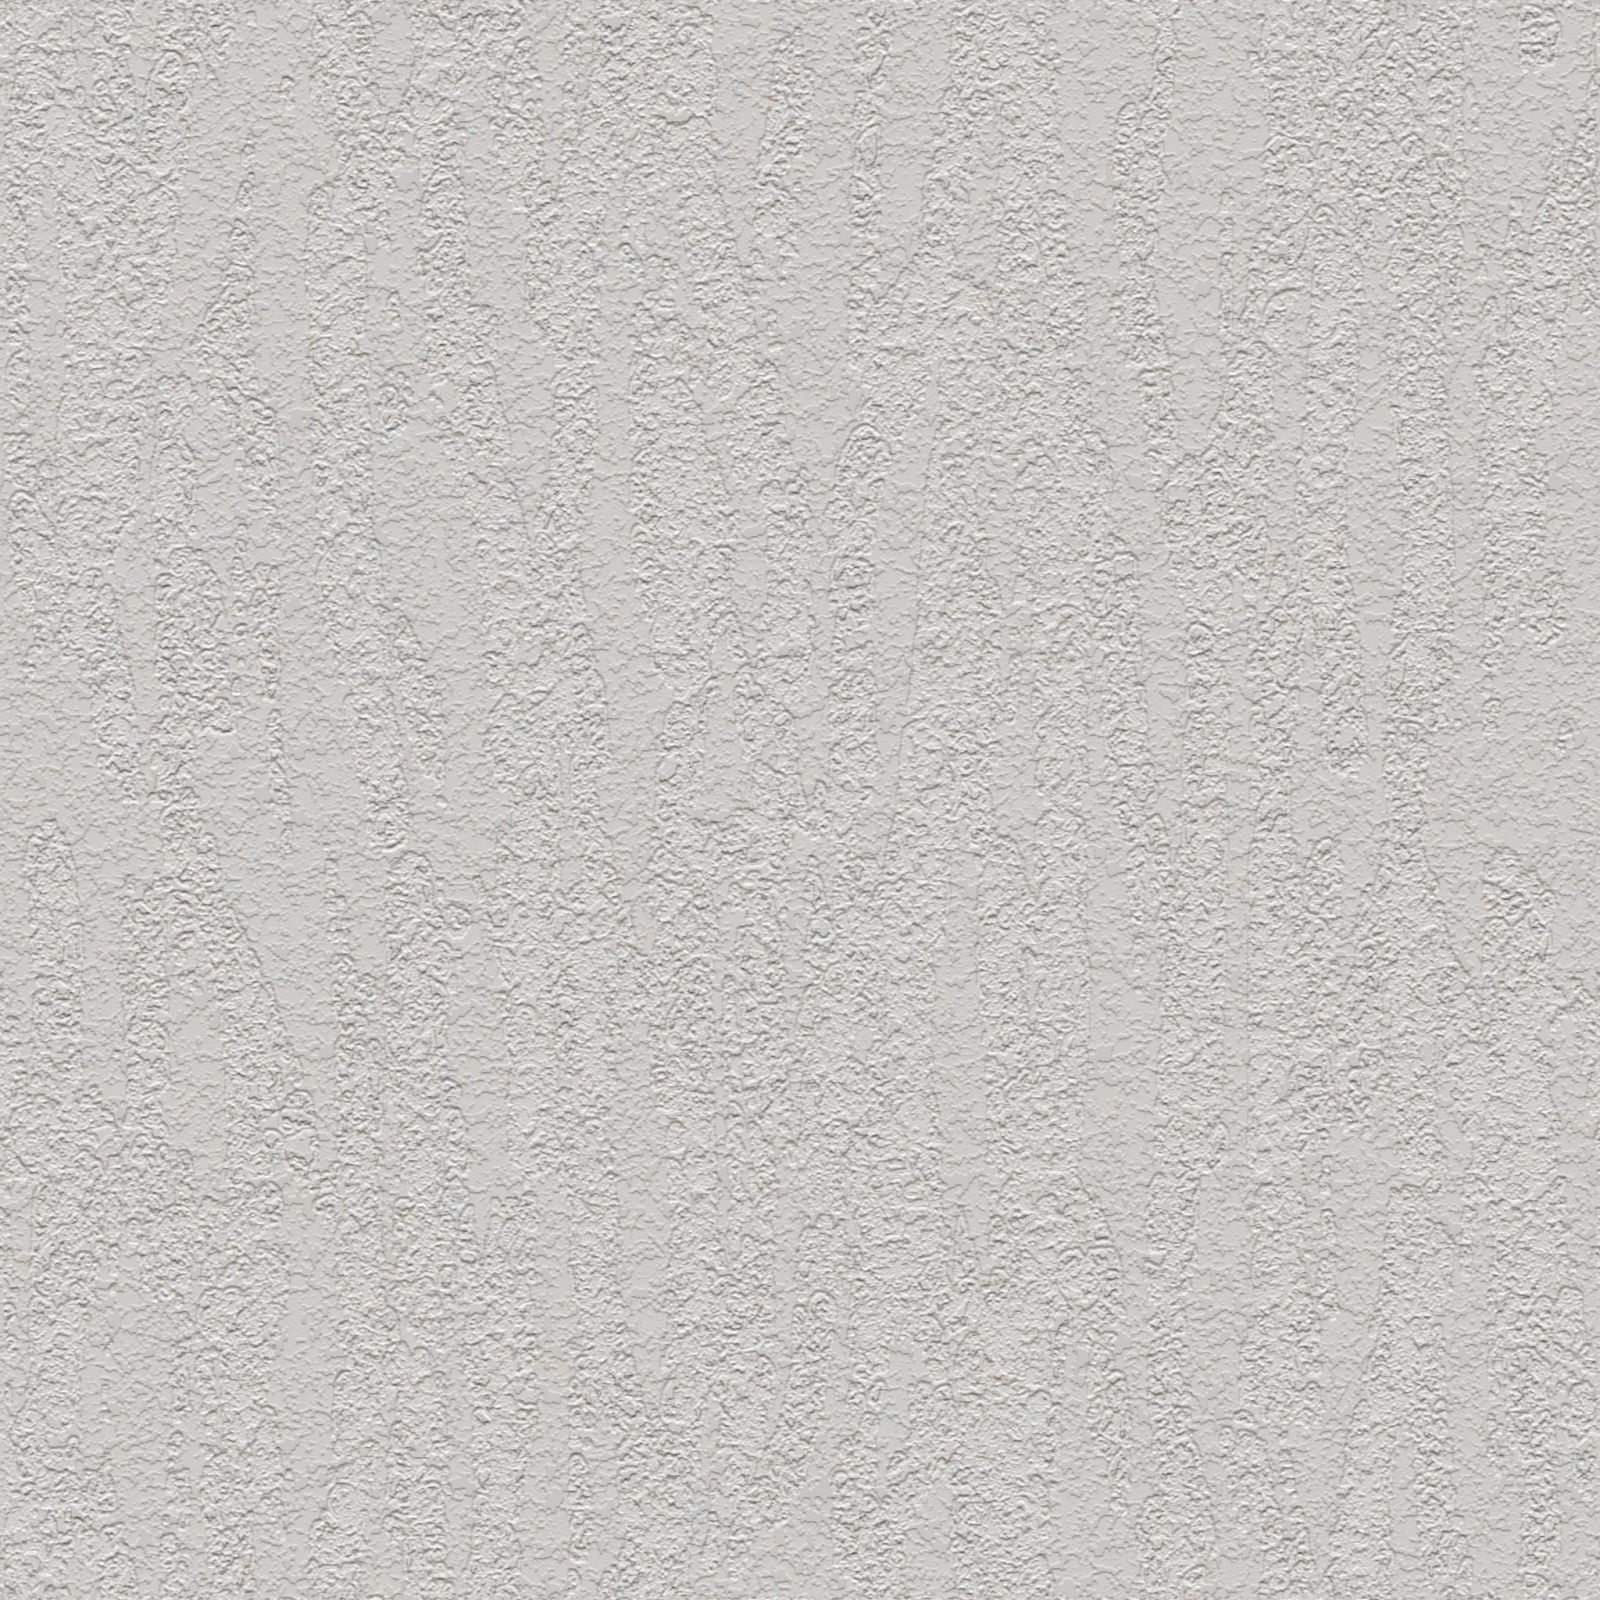 Smooth_stucco_white_paint_streaky_plaster_wall_texture_seamless_tileable